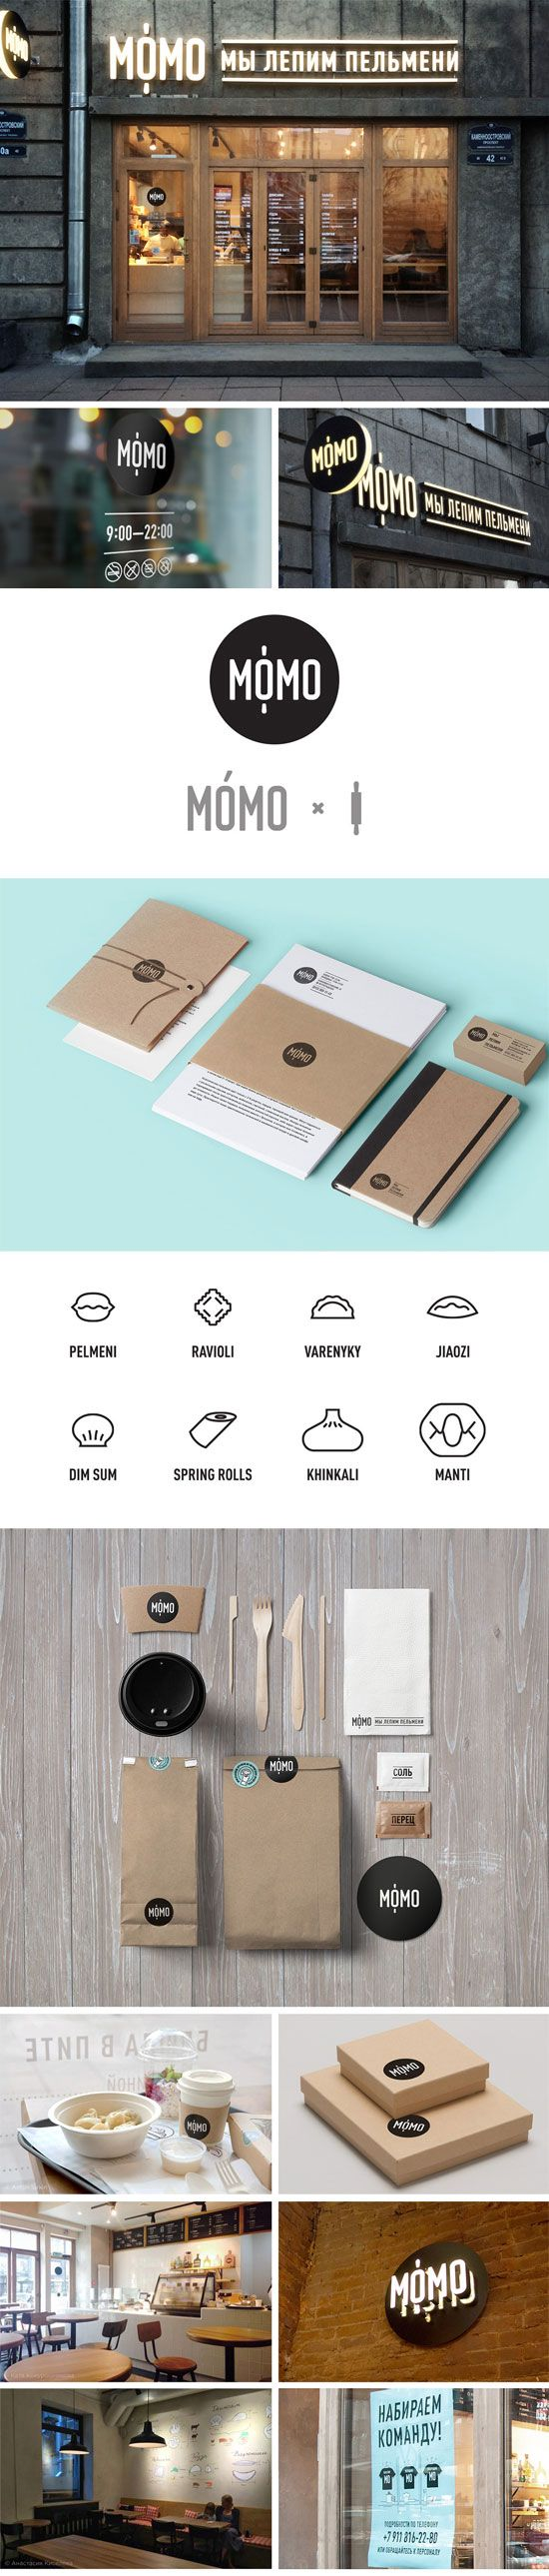 """""""MOMO Dumpling Cafe"""" by Will Try Further - 55 Brand Identity Design Examples for Restaurant   iBrandStudio"""